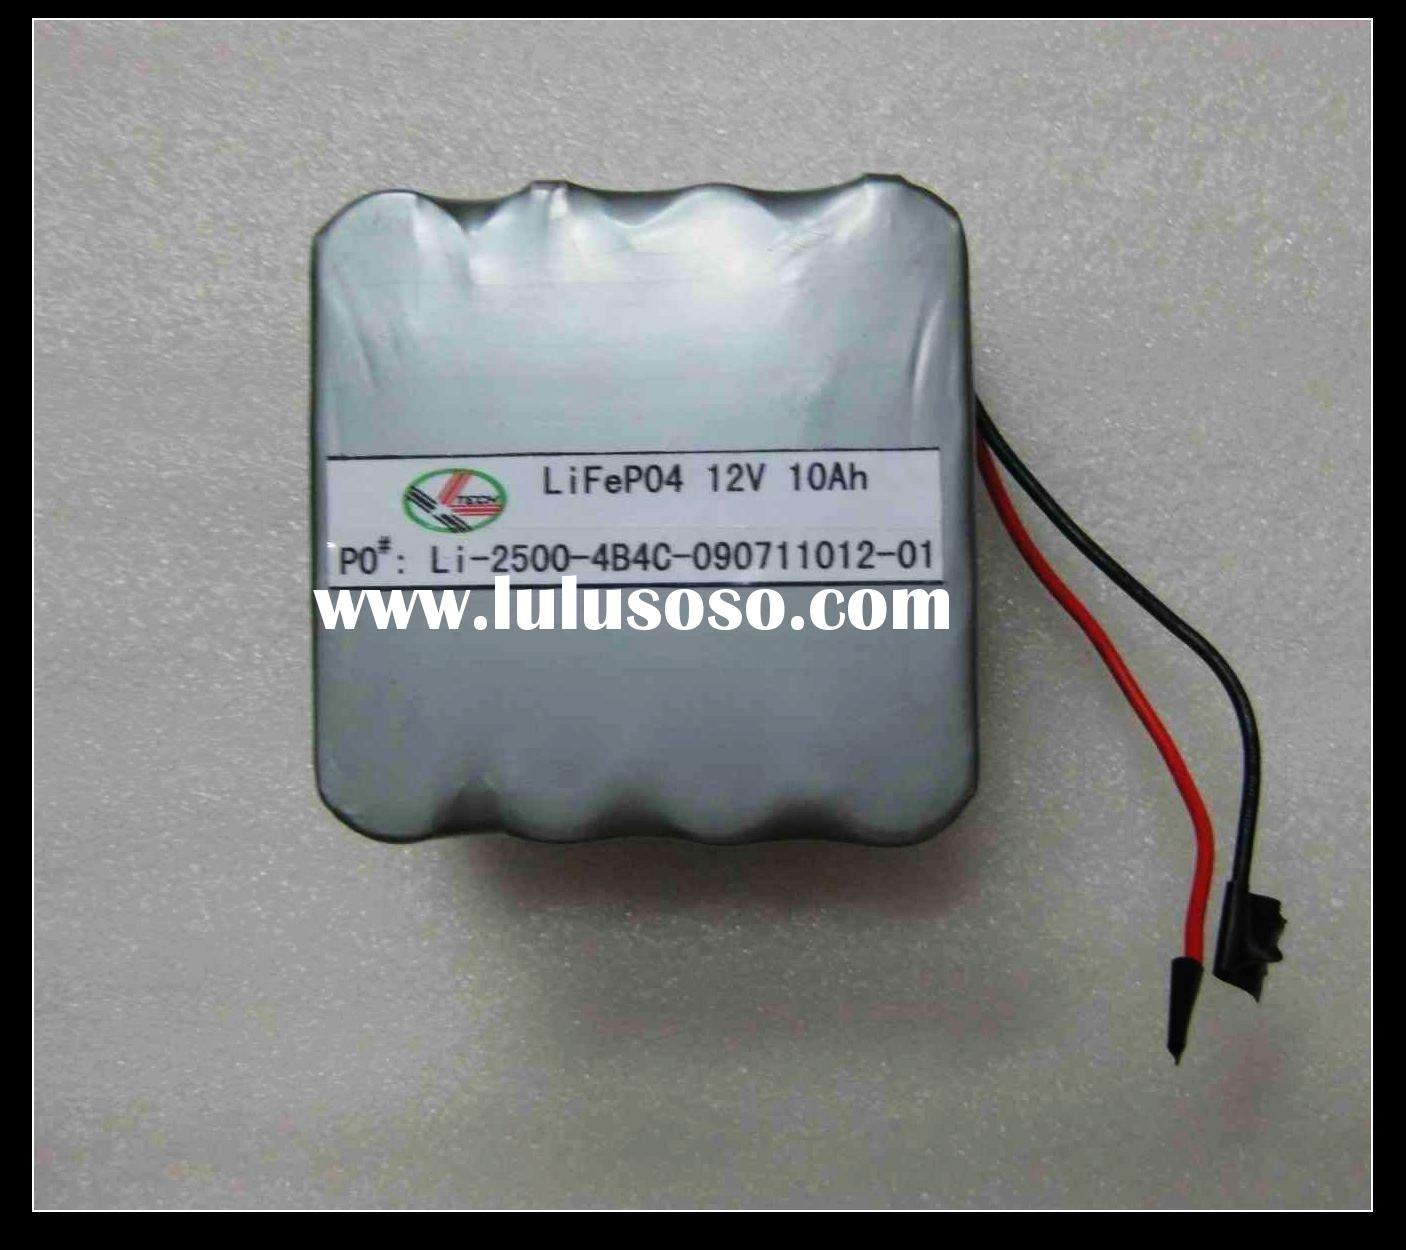 10ah lithium-ion rechargeable battery 12v lifepo4